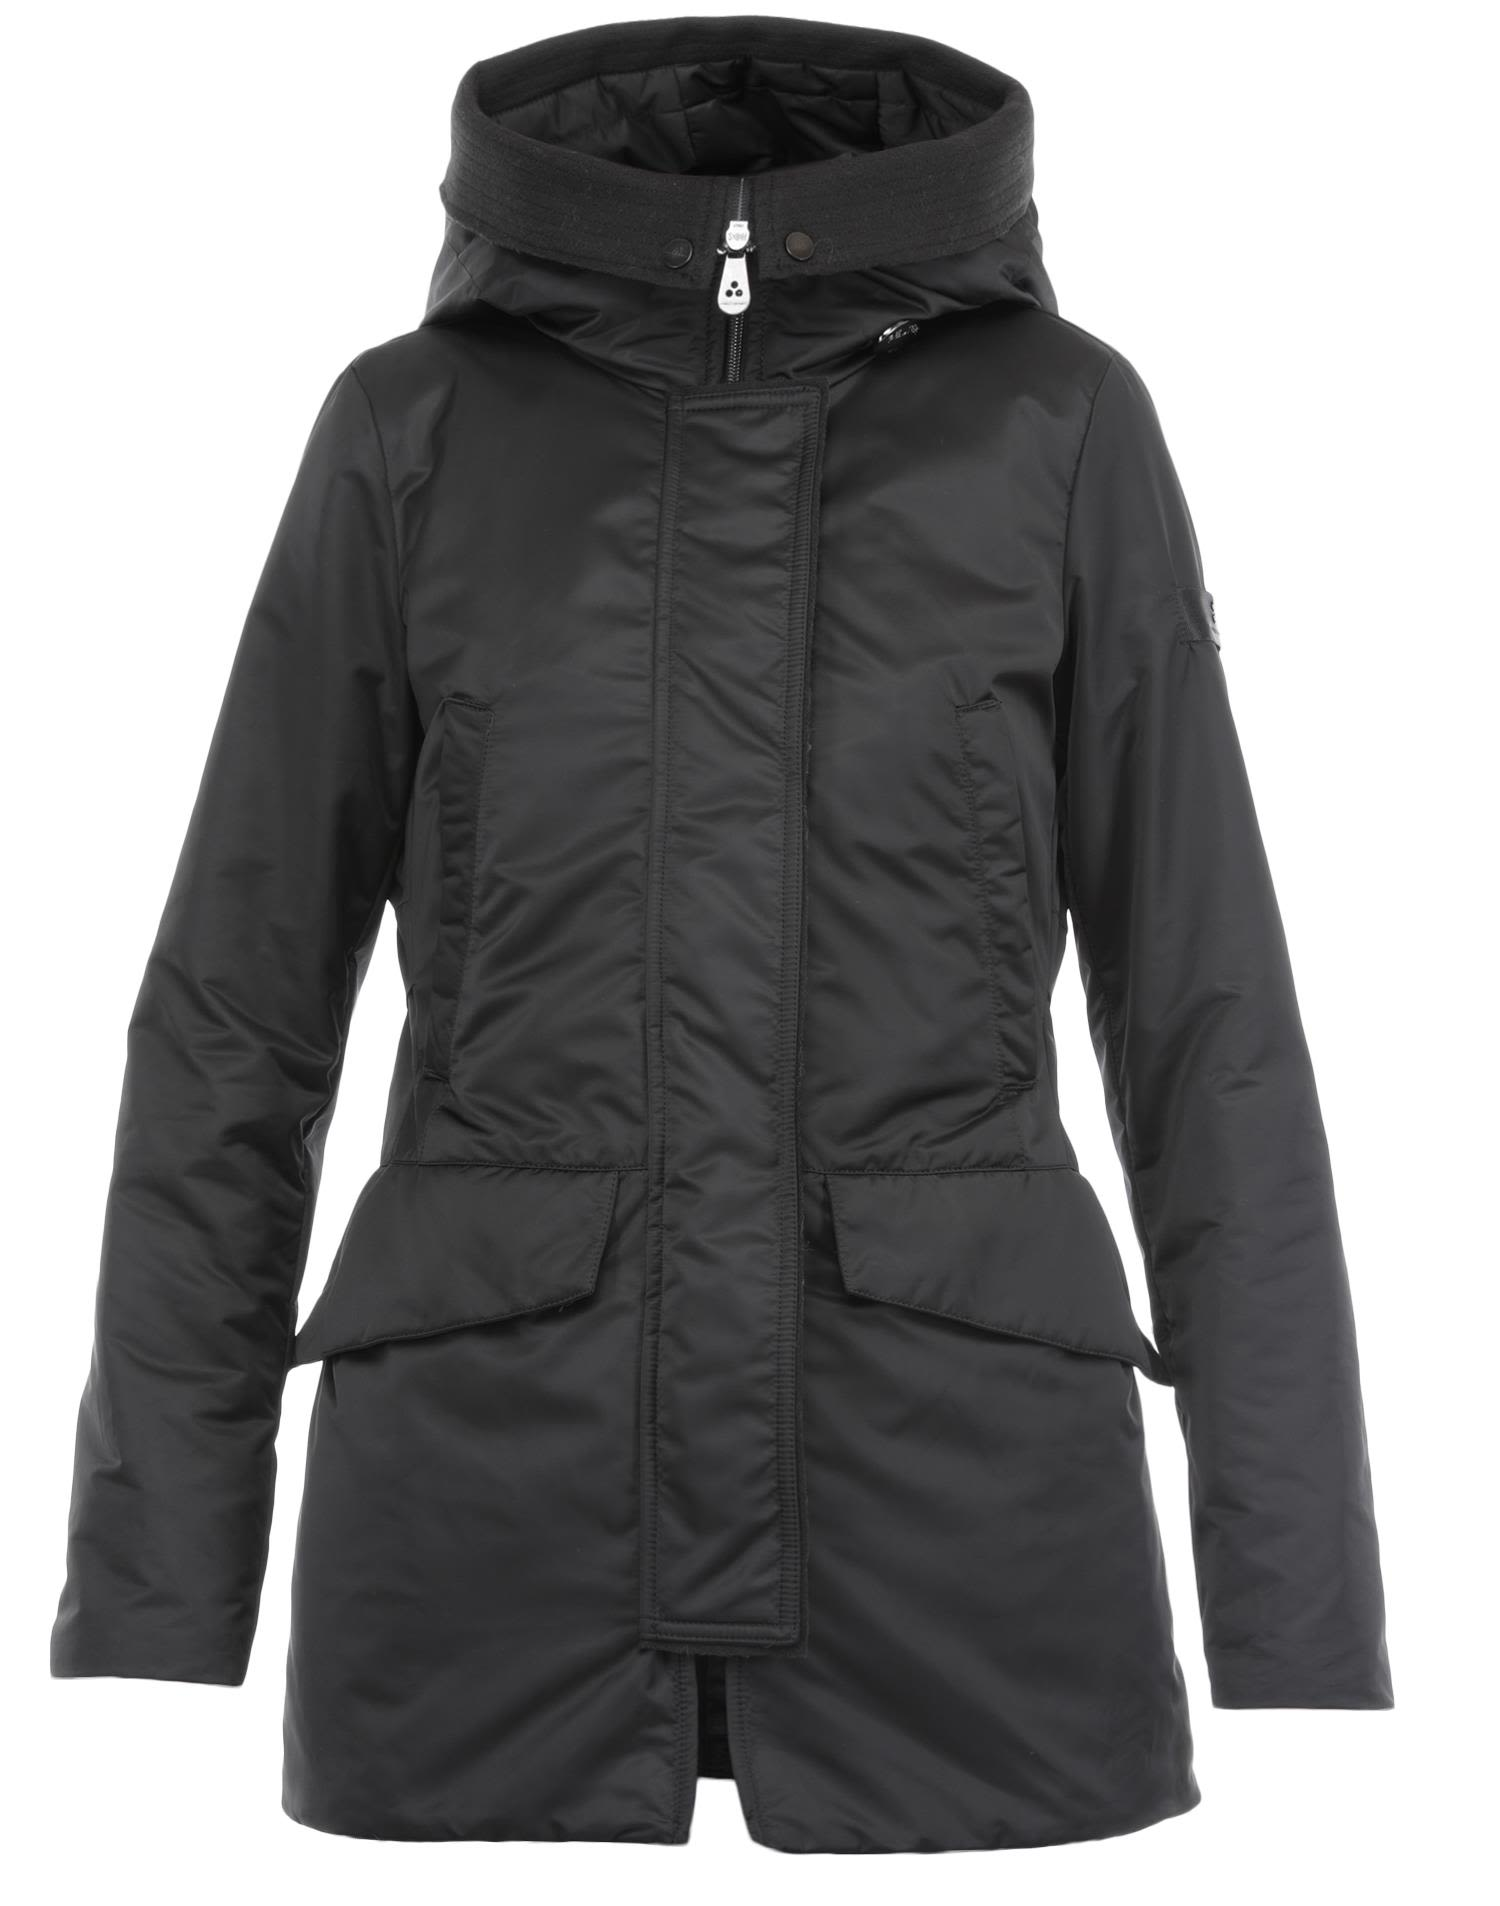 Peuterey Wired Raincoat